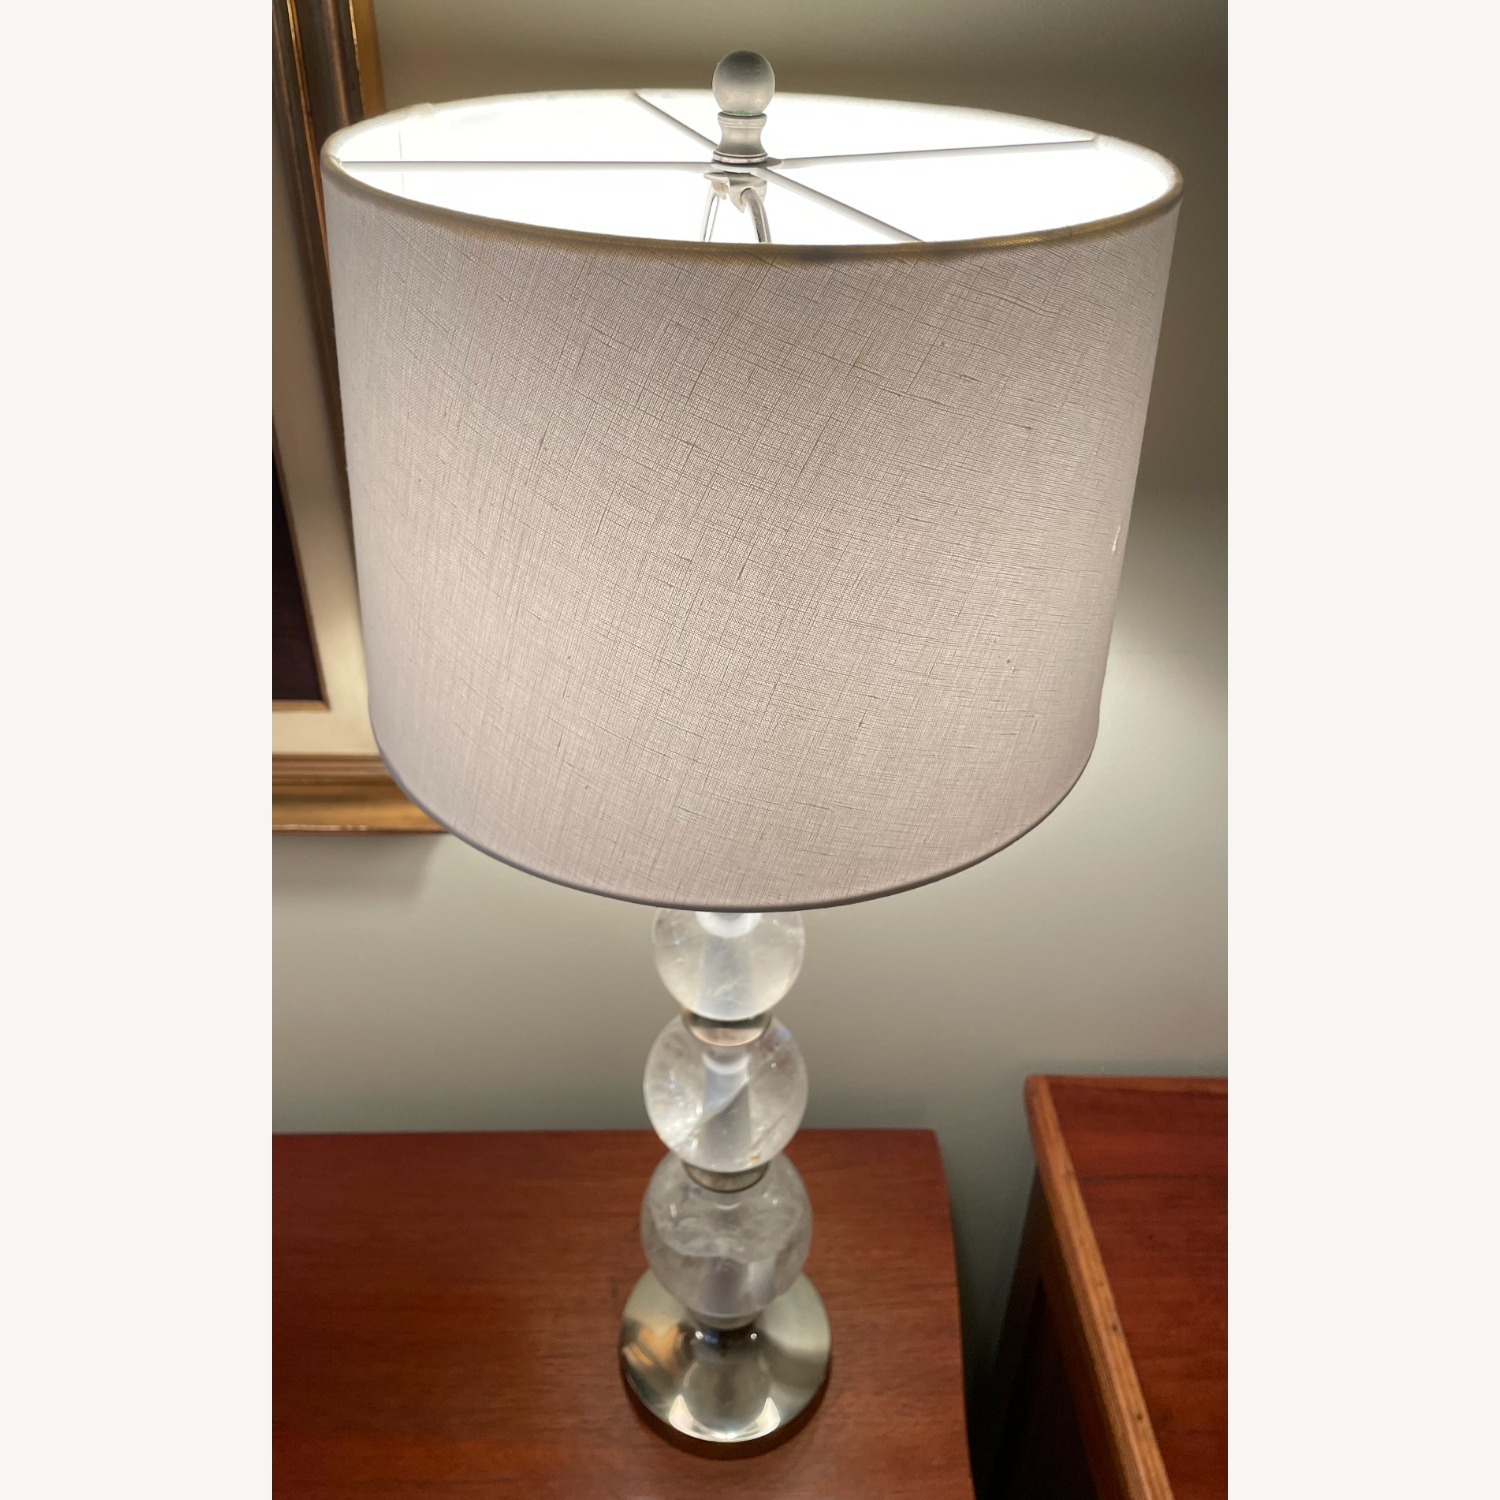 Lutry Crystal Ball Lamps by Vaughan Designs - image-5